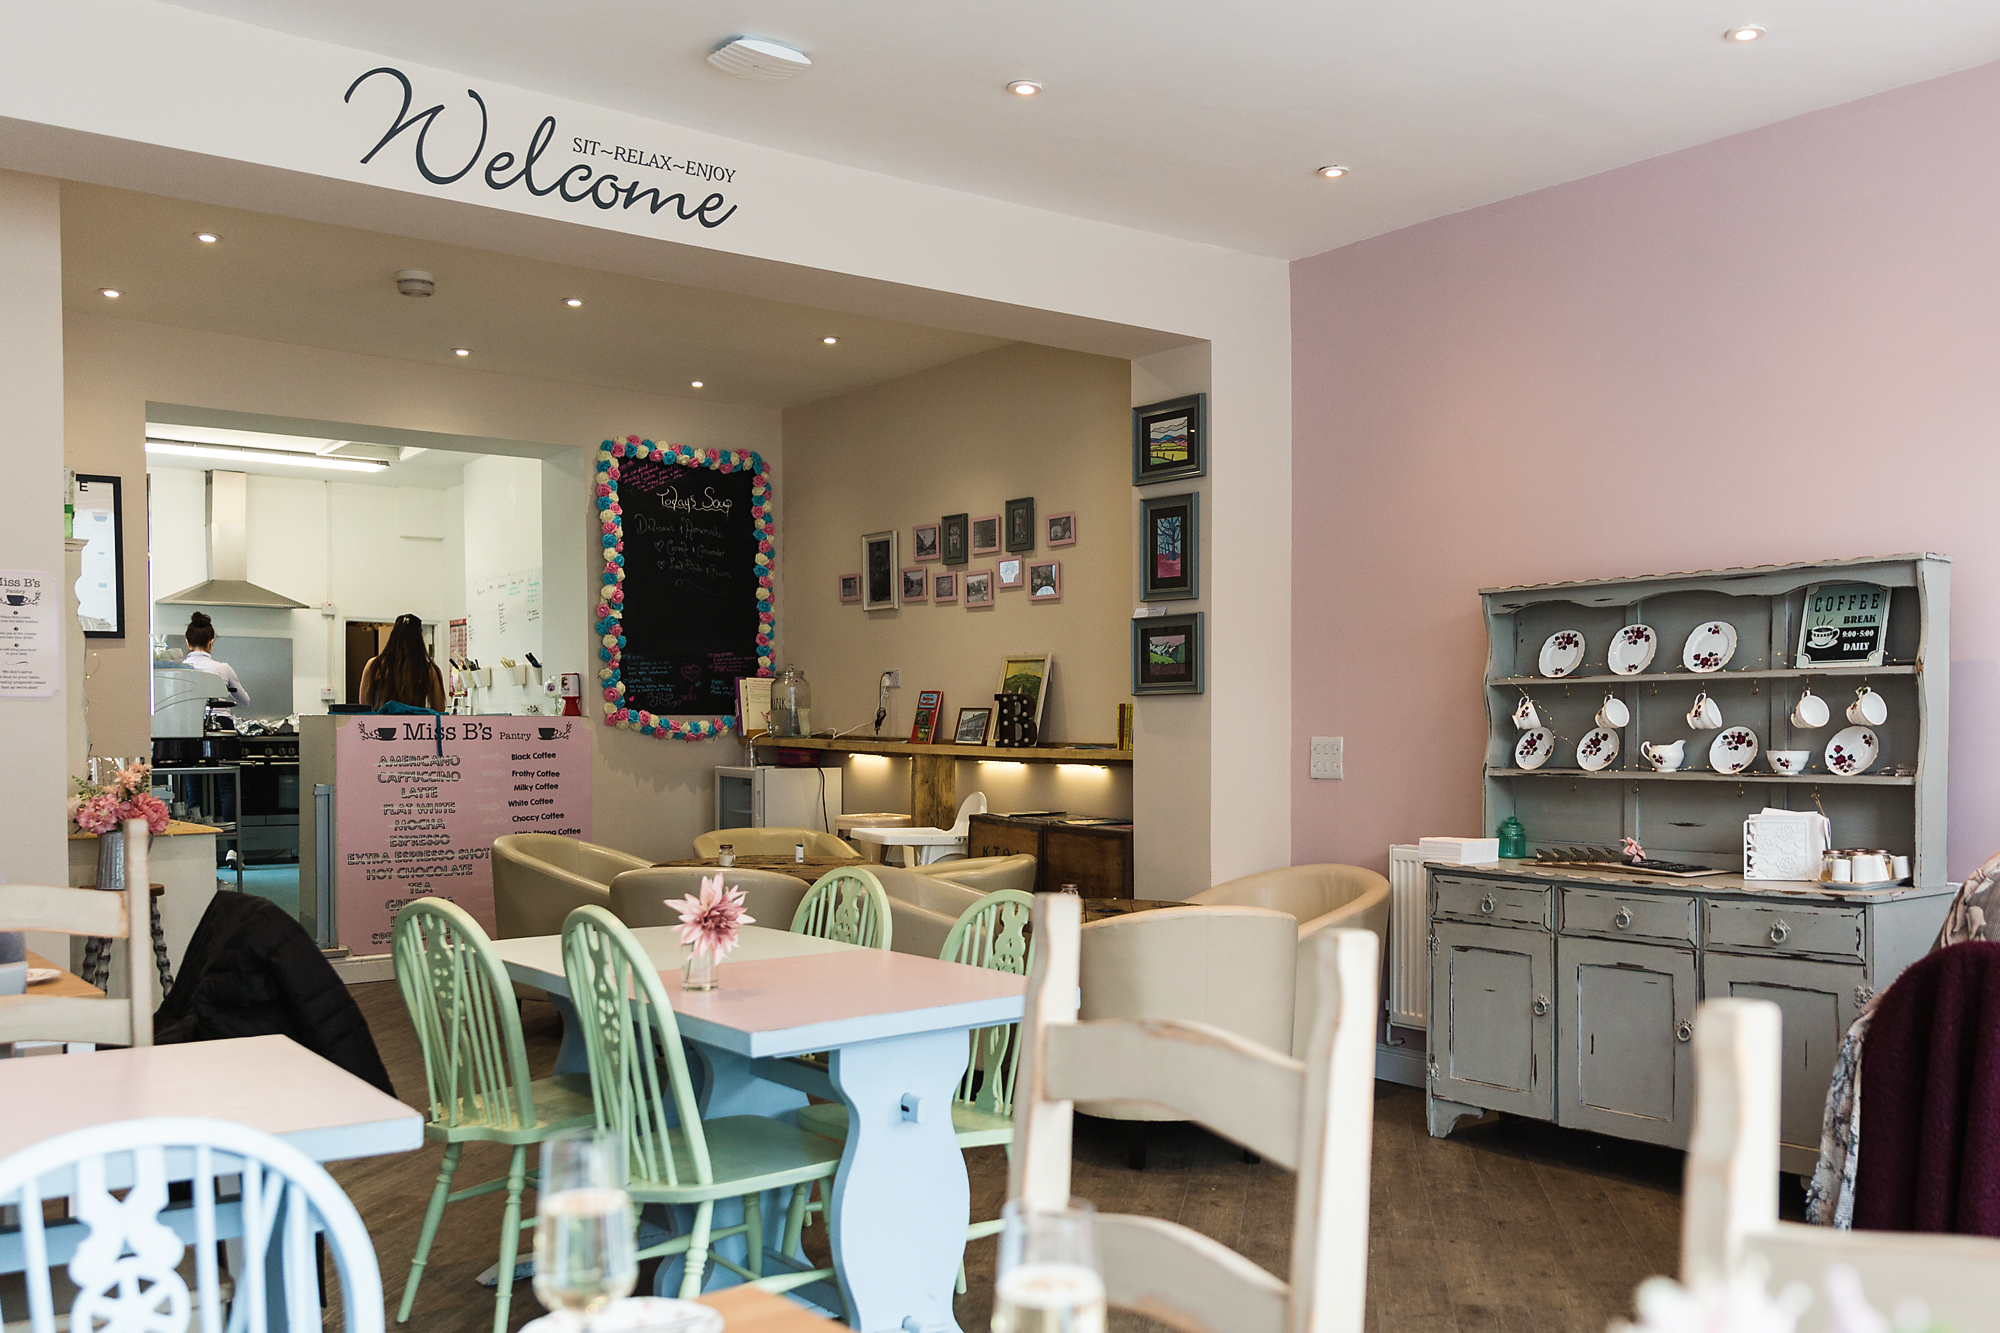 Miss B's cafe bedwas